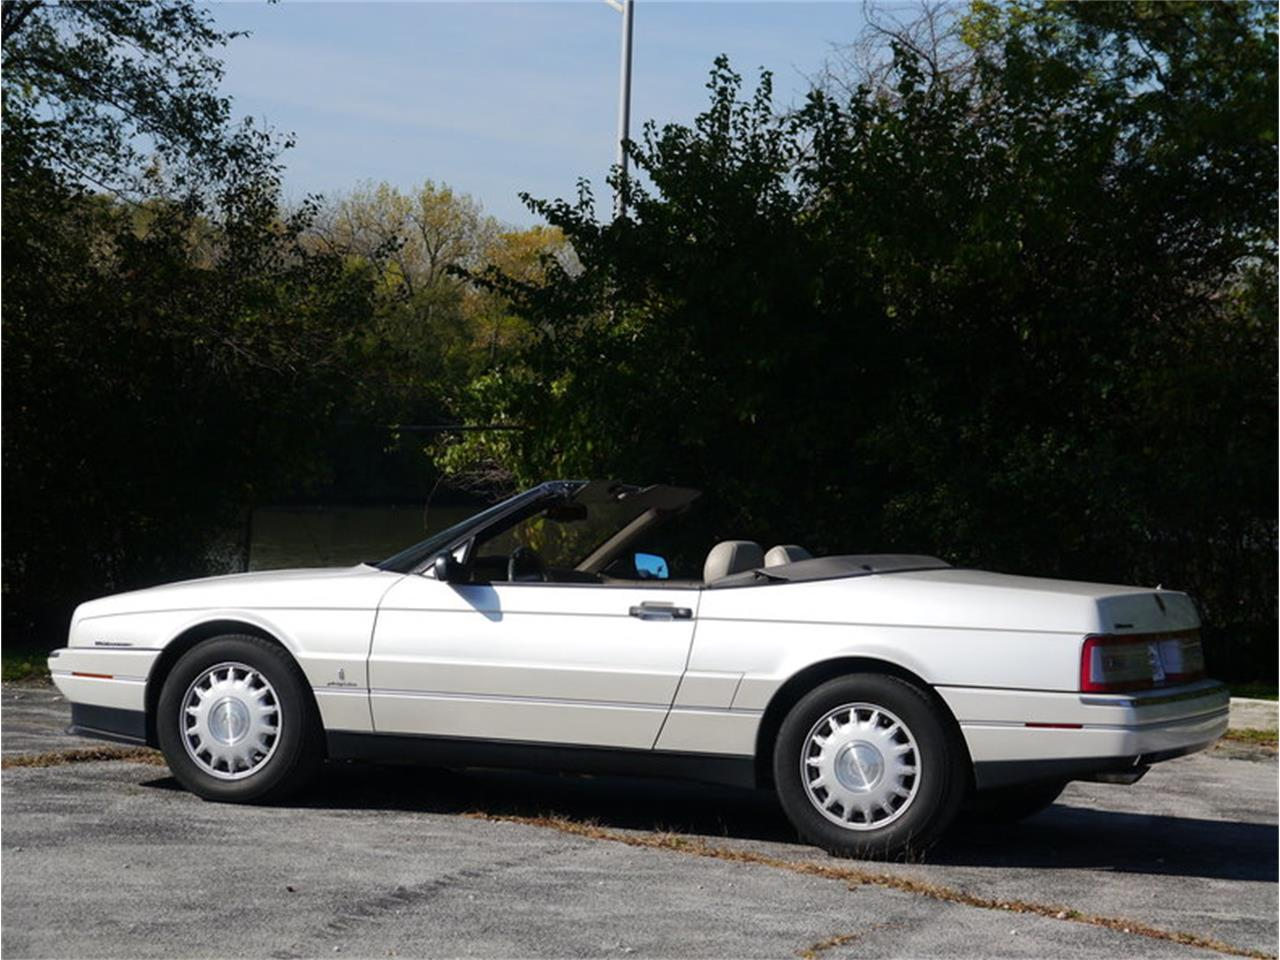 Large Picture of 1993 Cadillac Allante located in Alsip Illinois - $14,900.00 Offered by Midwest Car Exchange - MD78